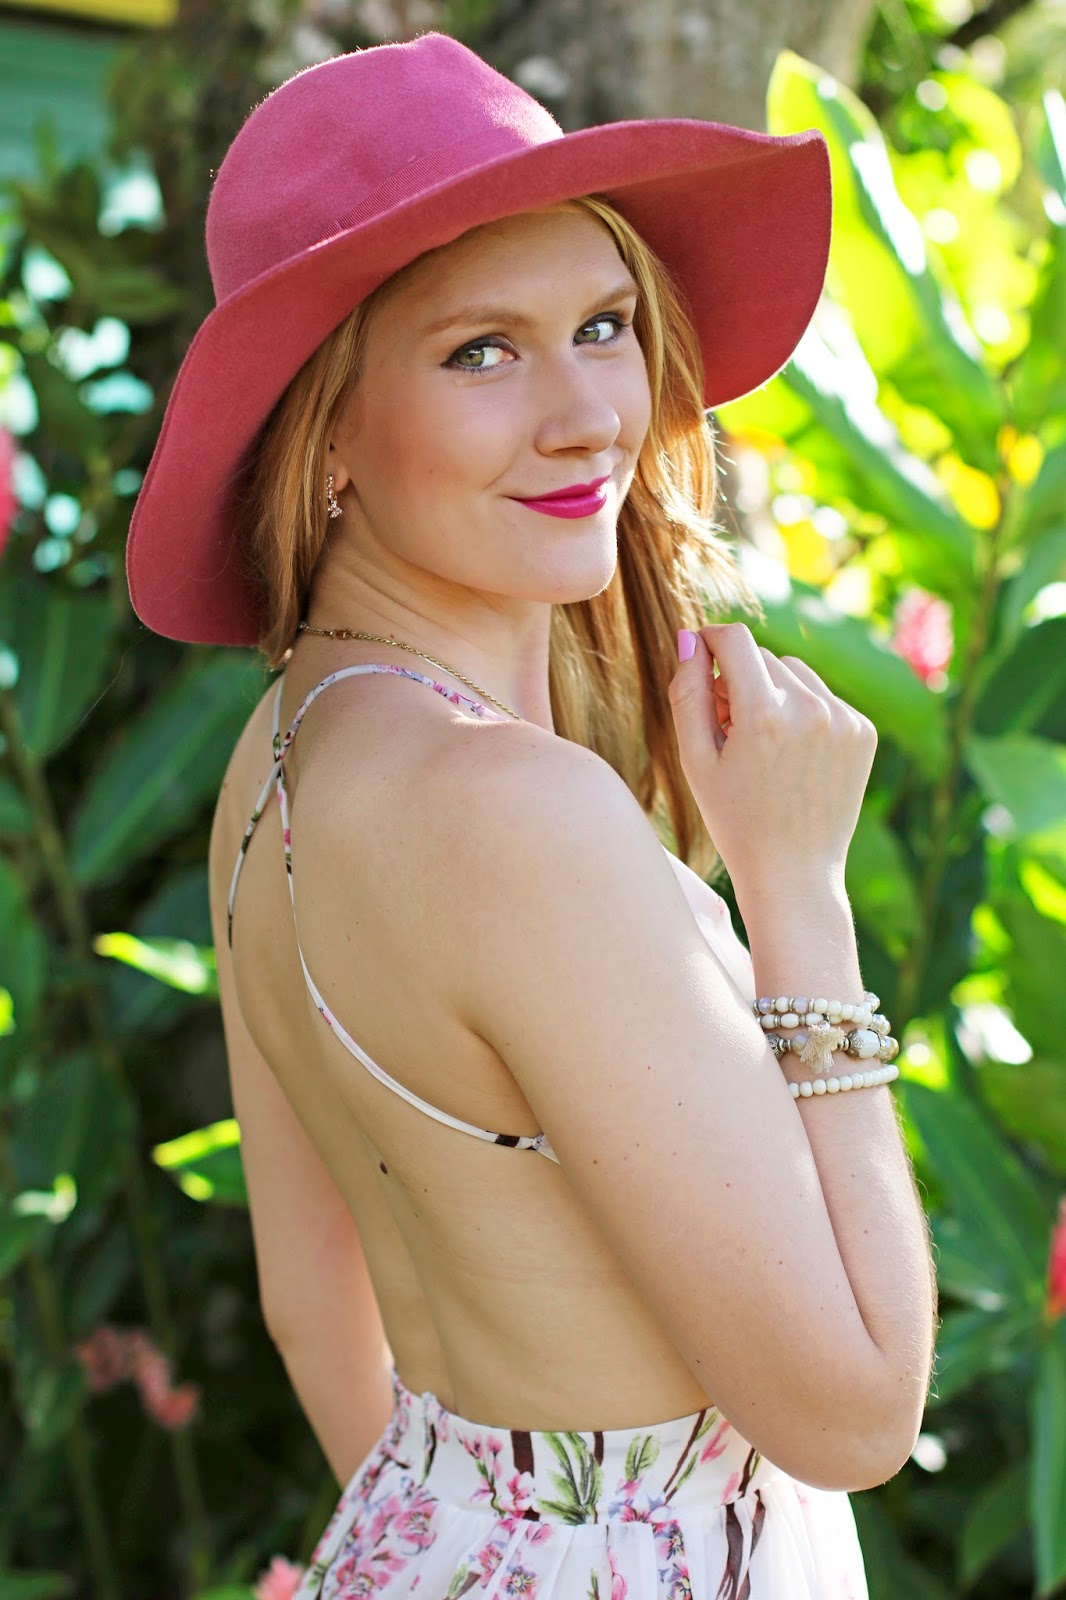 This pink floppy hat is so girly and chic!